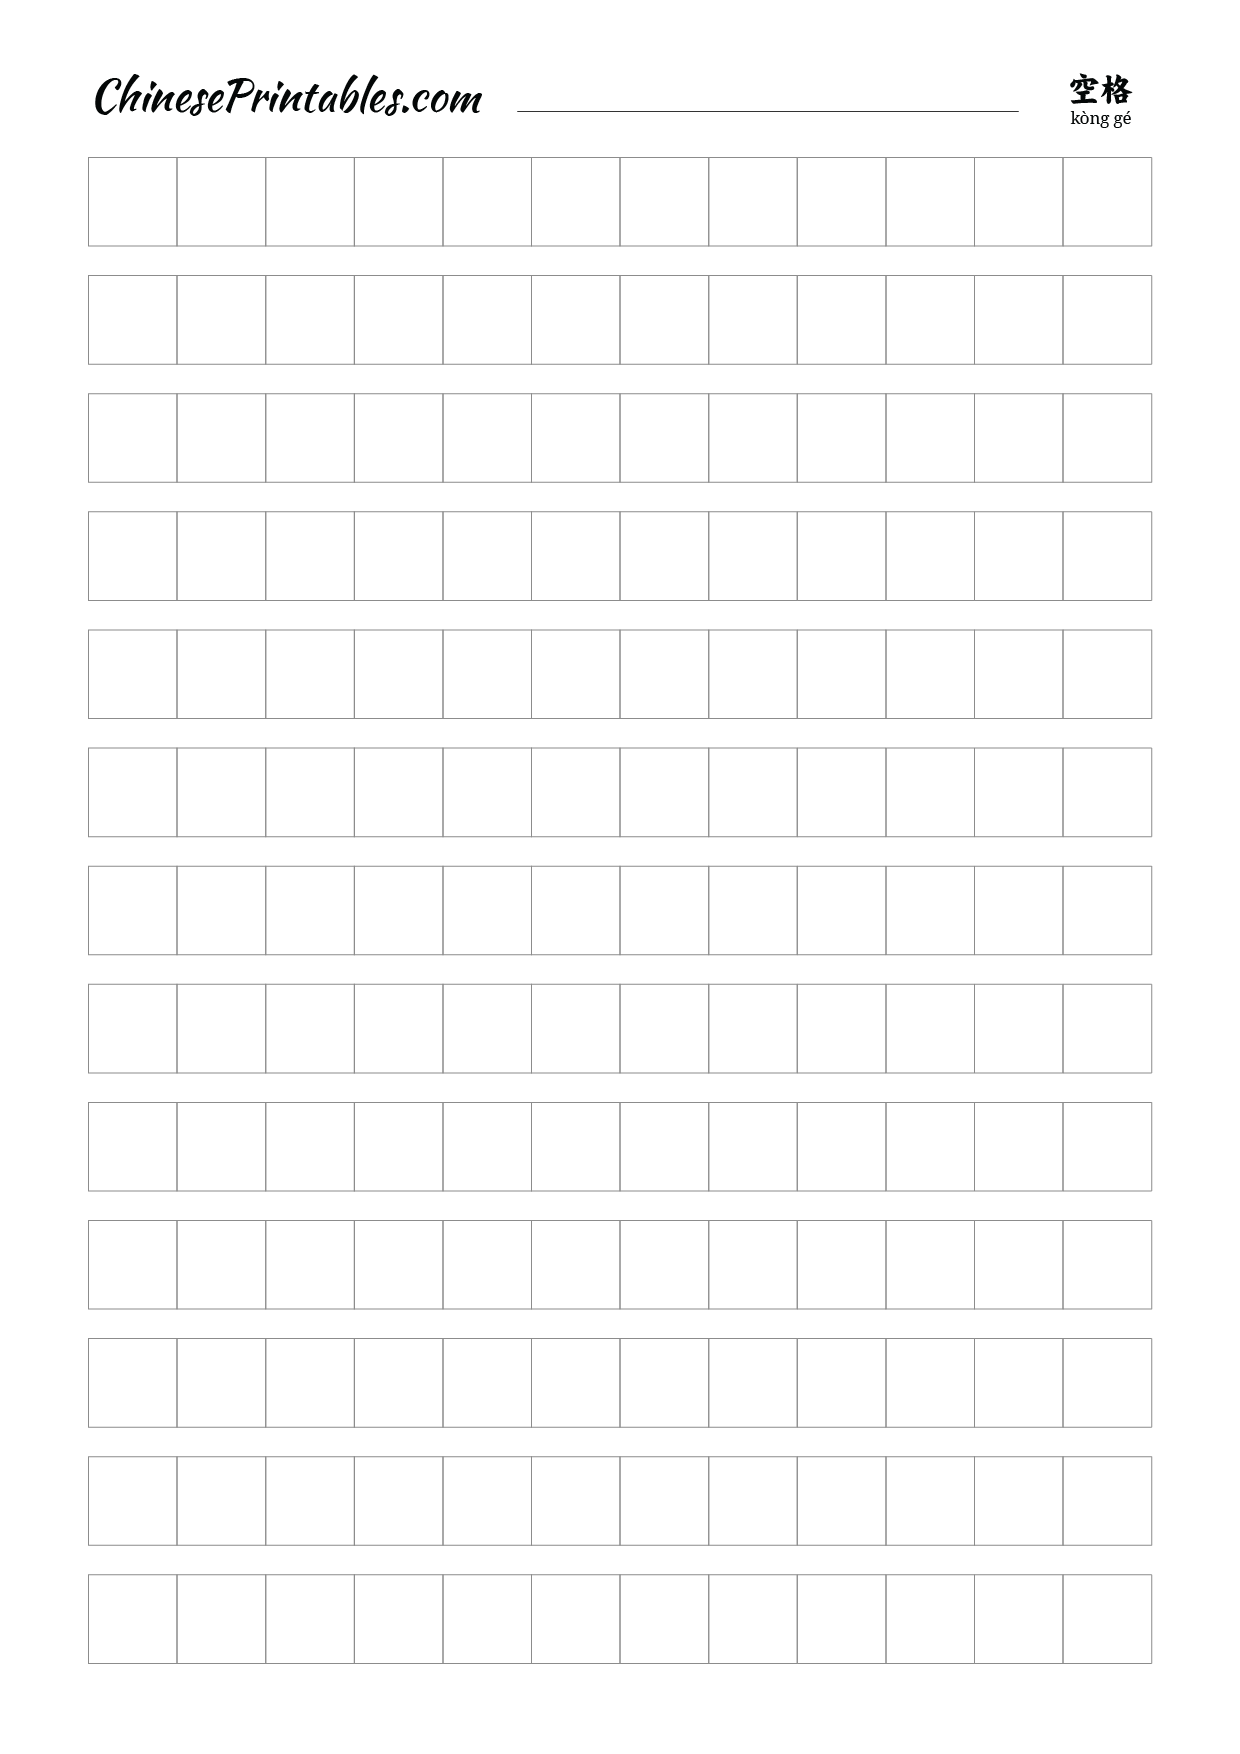 Chinese Printables - Free Printable Resources To Help You